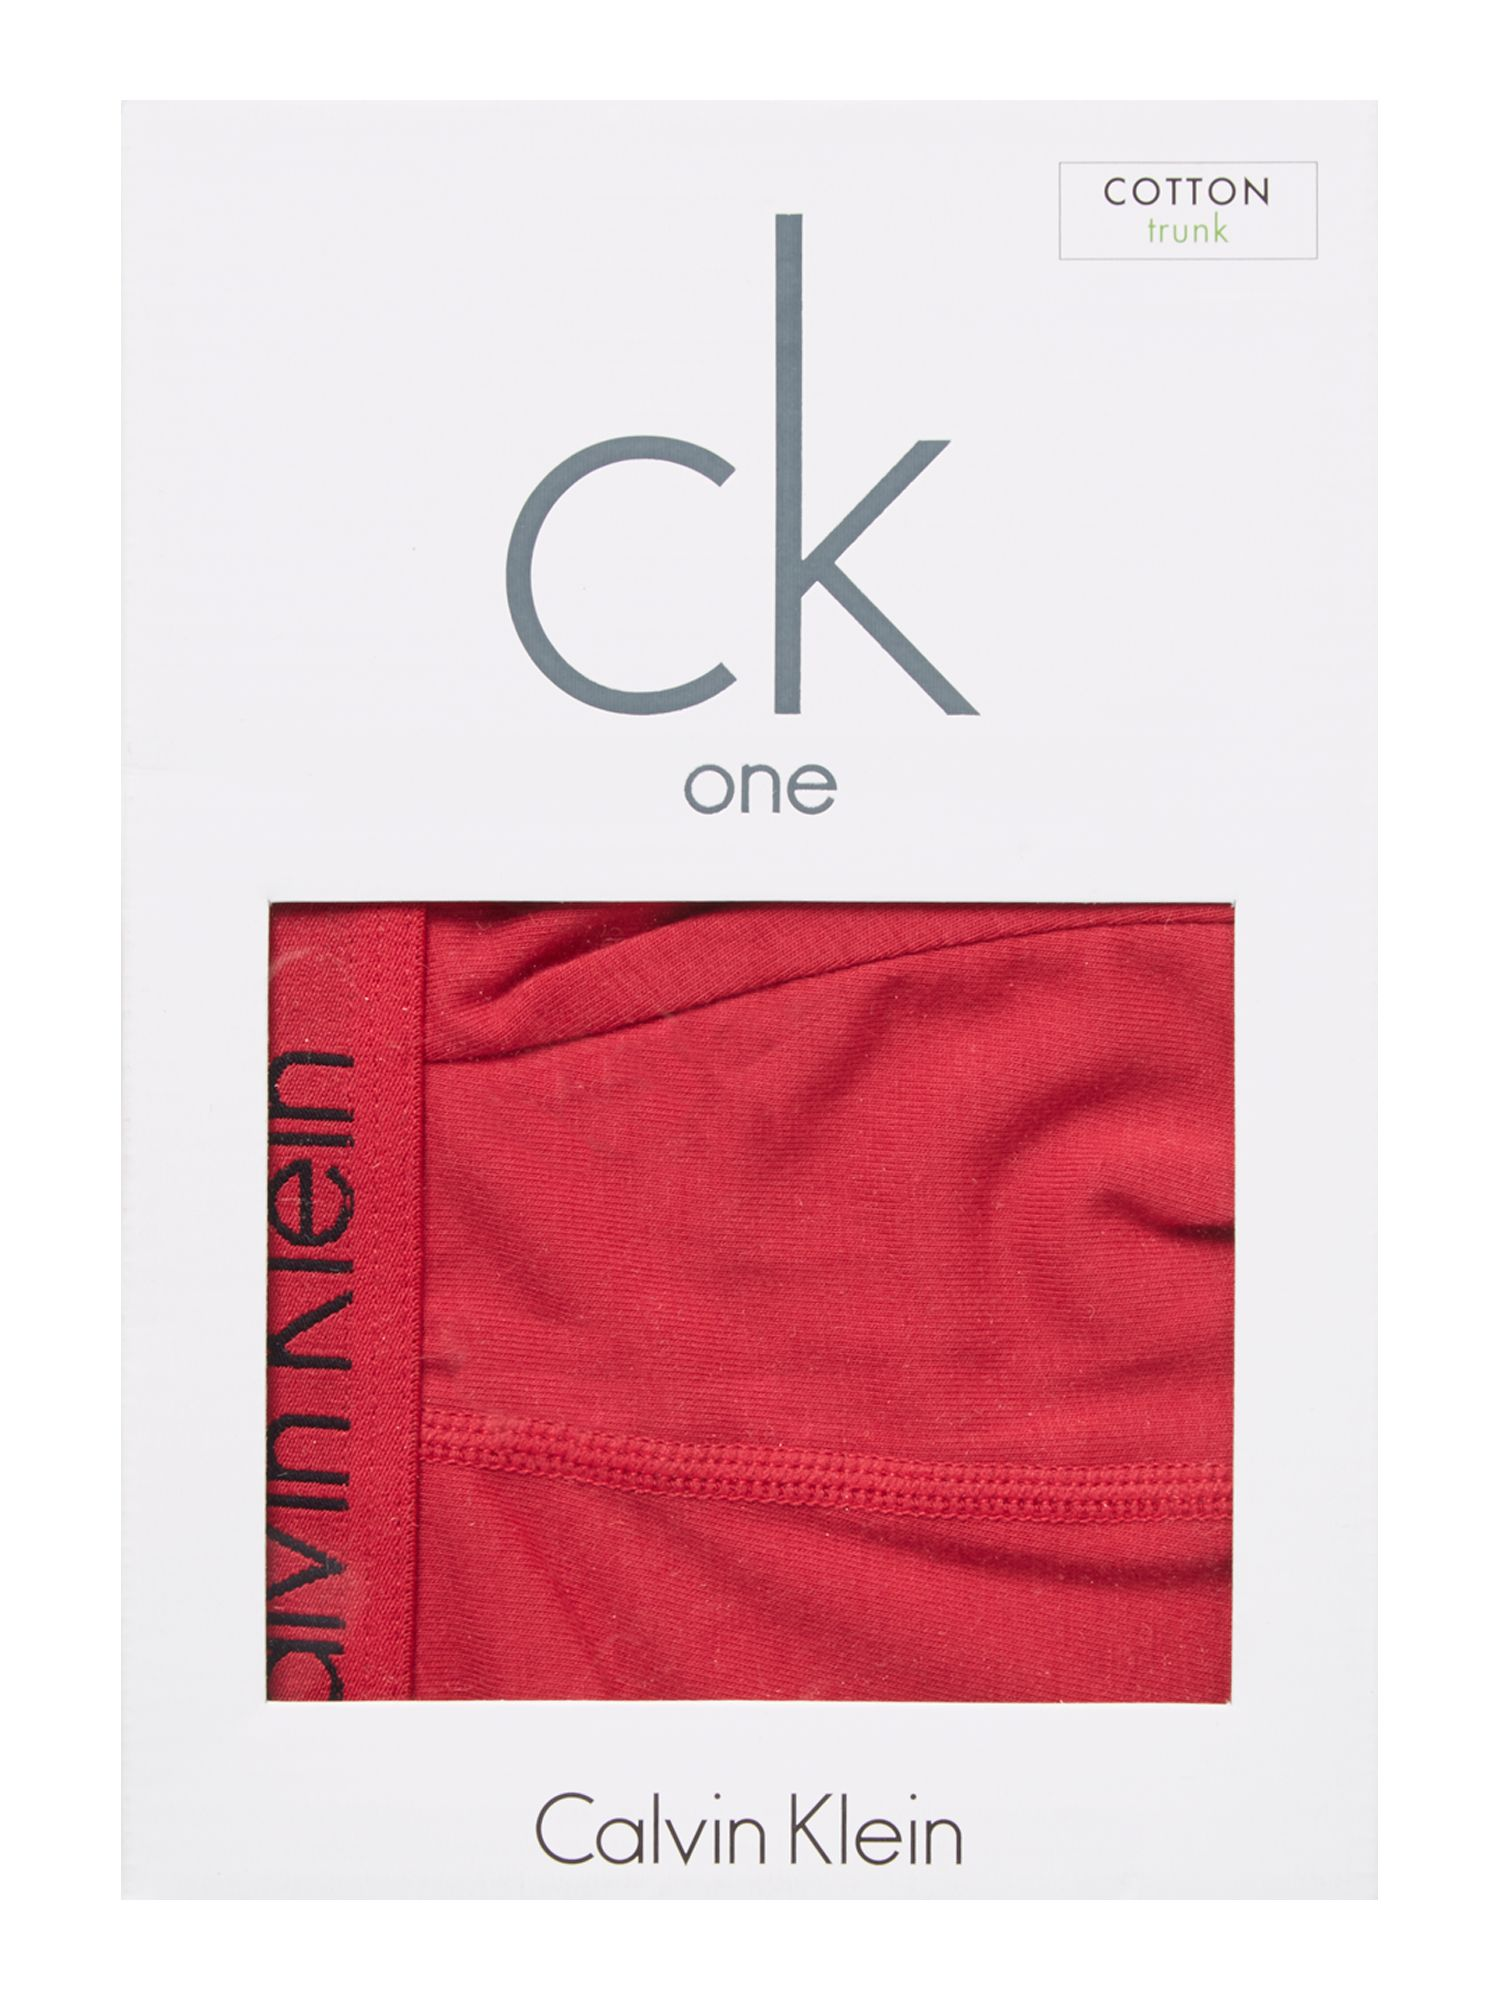 Flame red underwear trunk